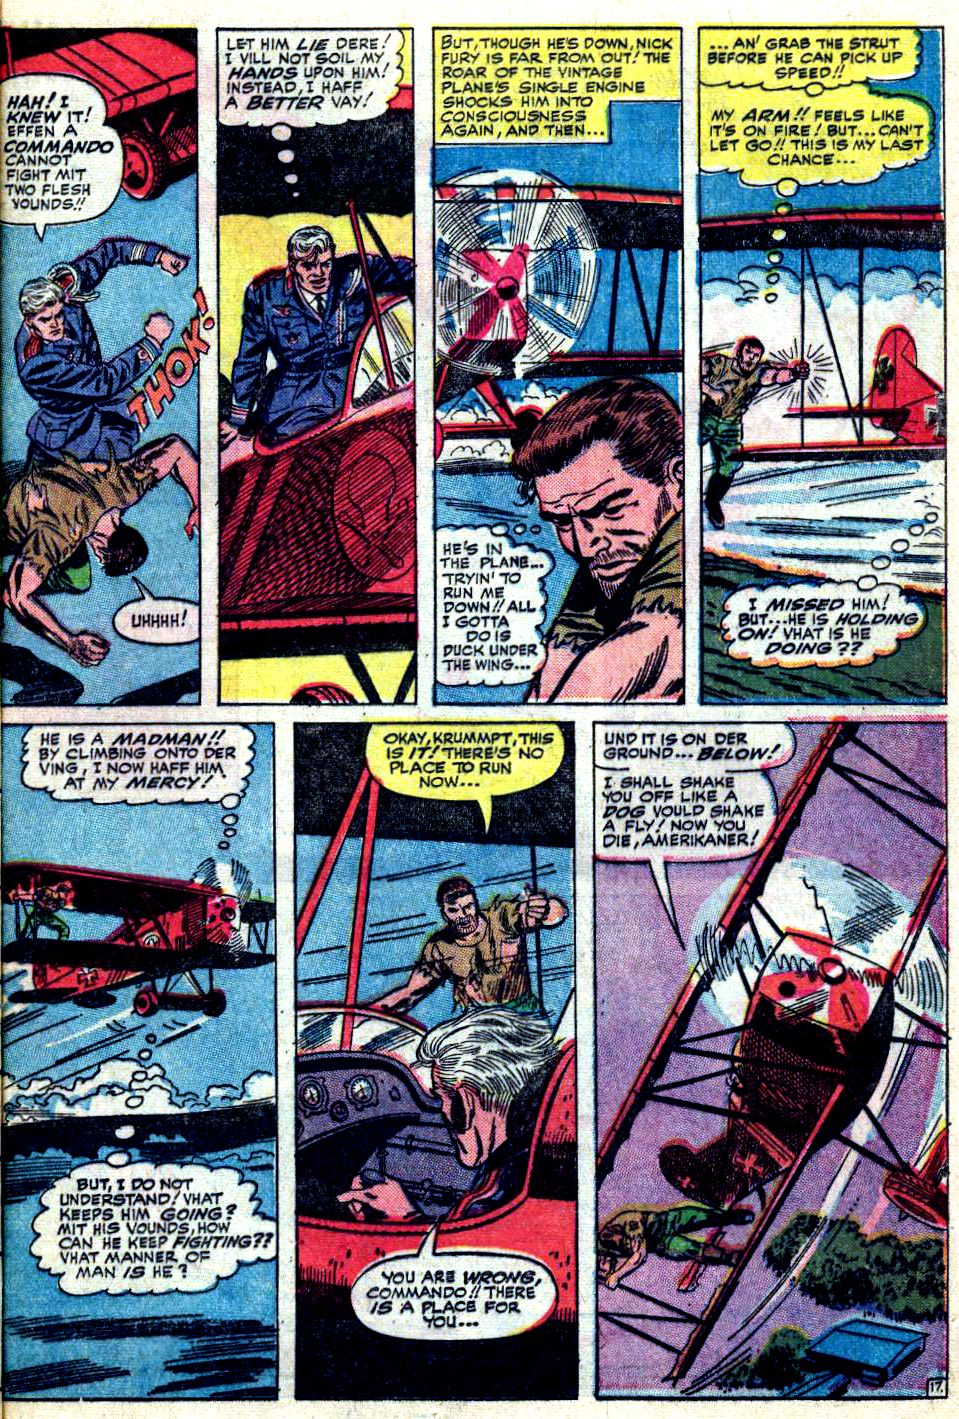 Read online Sgt. Fury comic -  Issue #19 - 25